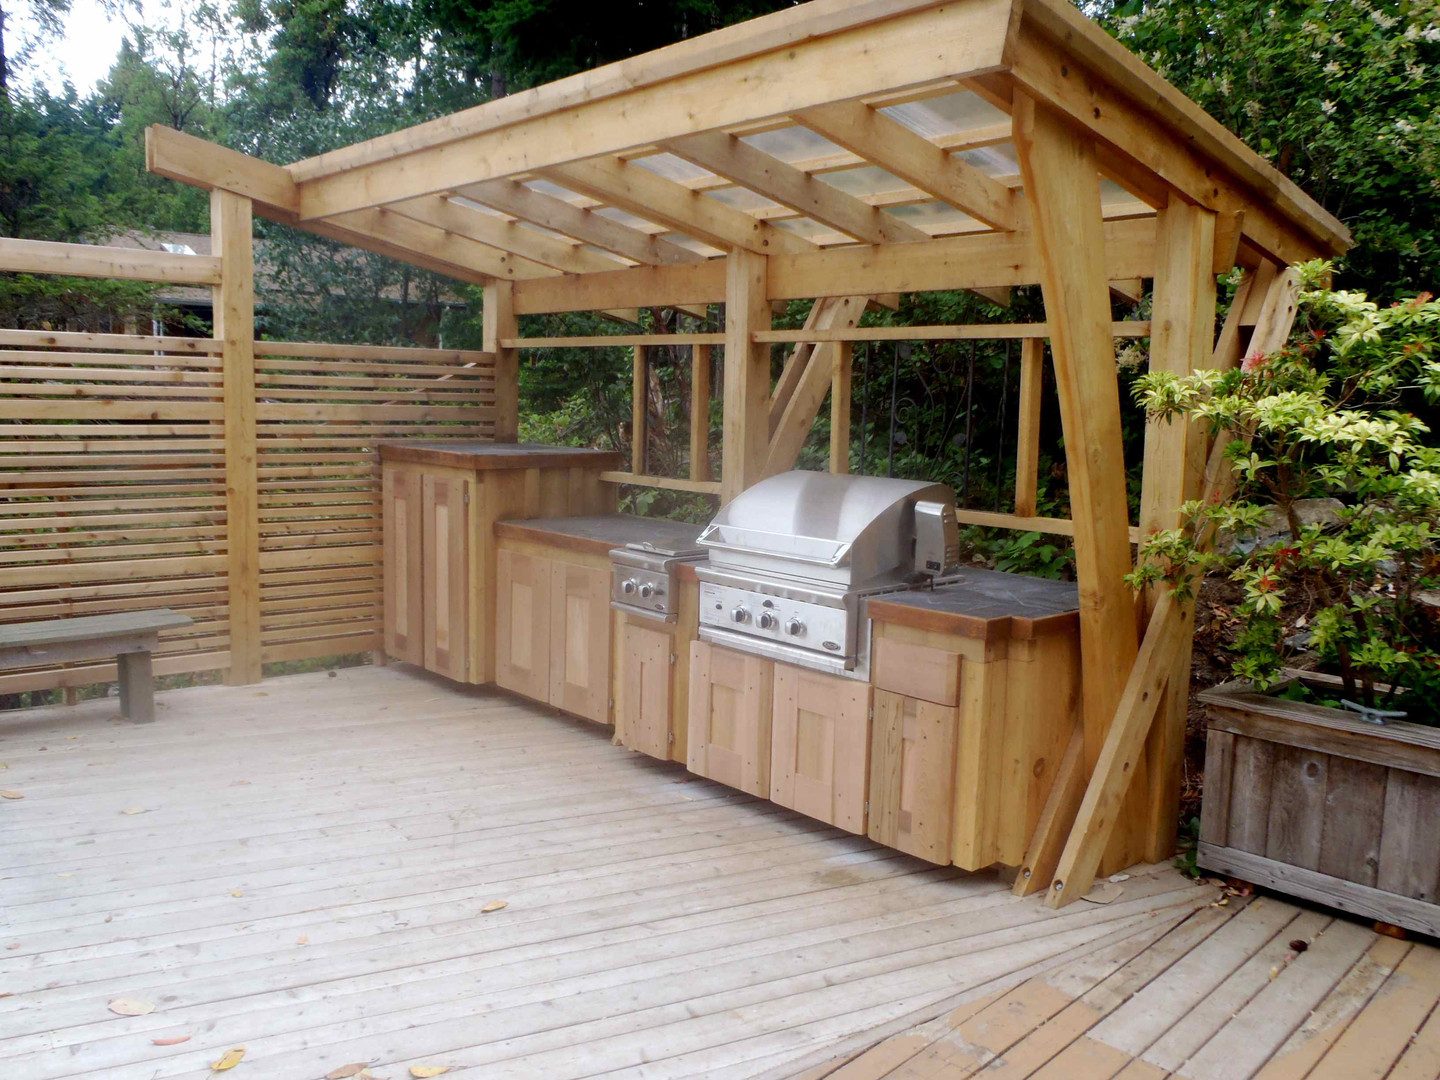 Diy Outdoor Kitchen Ideas  These DIY Outdoor Kitchen Plans Turn Your Backyard Into